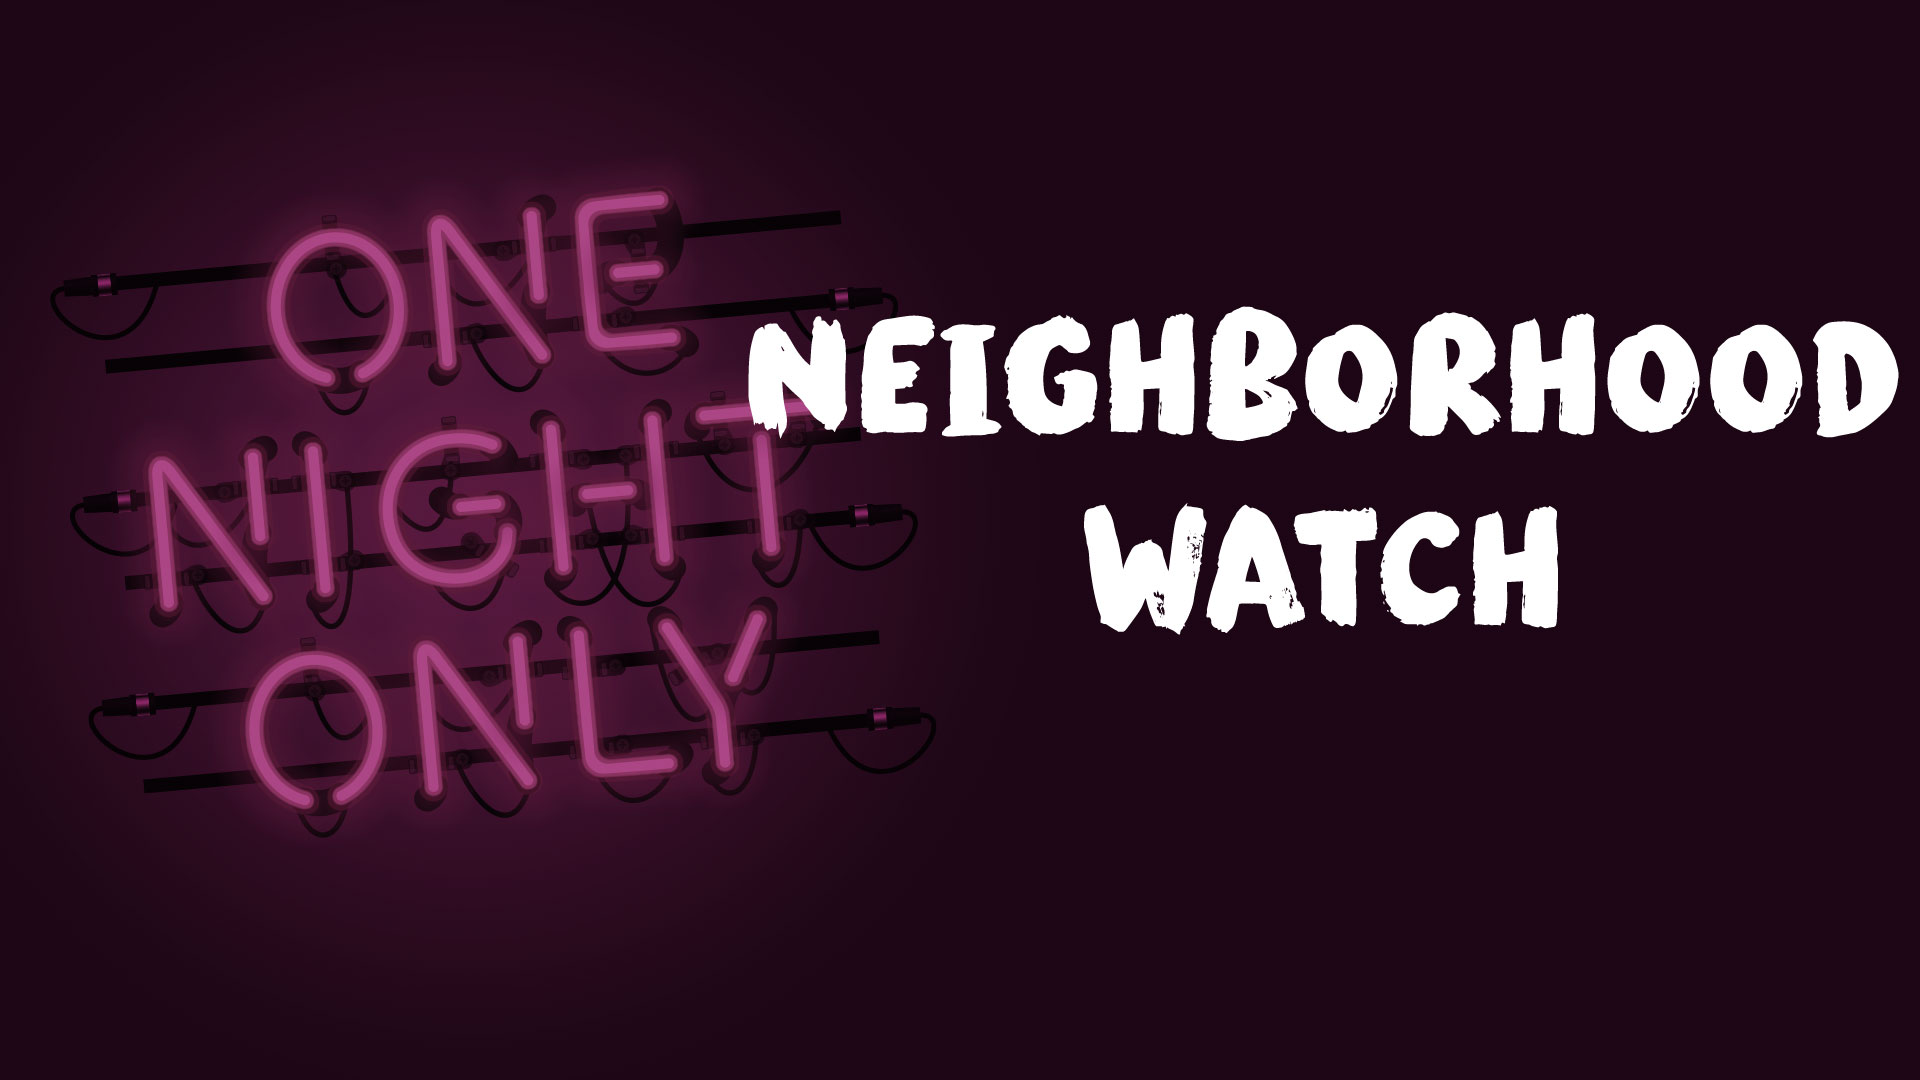 One Night Only: Neighborhood Watch